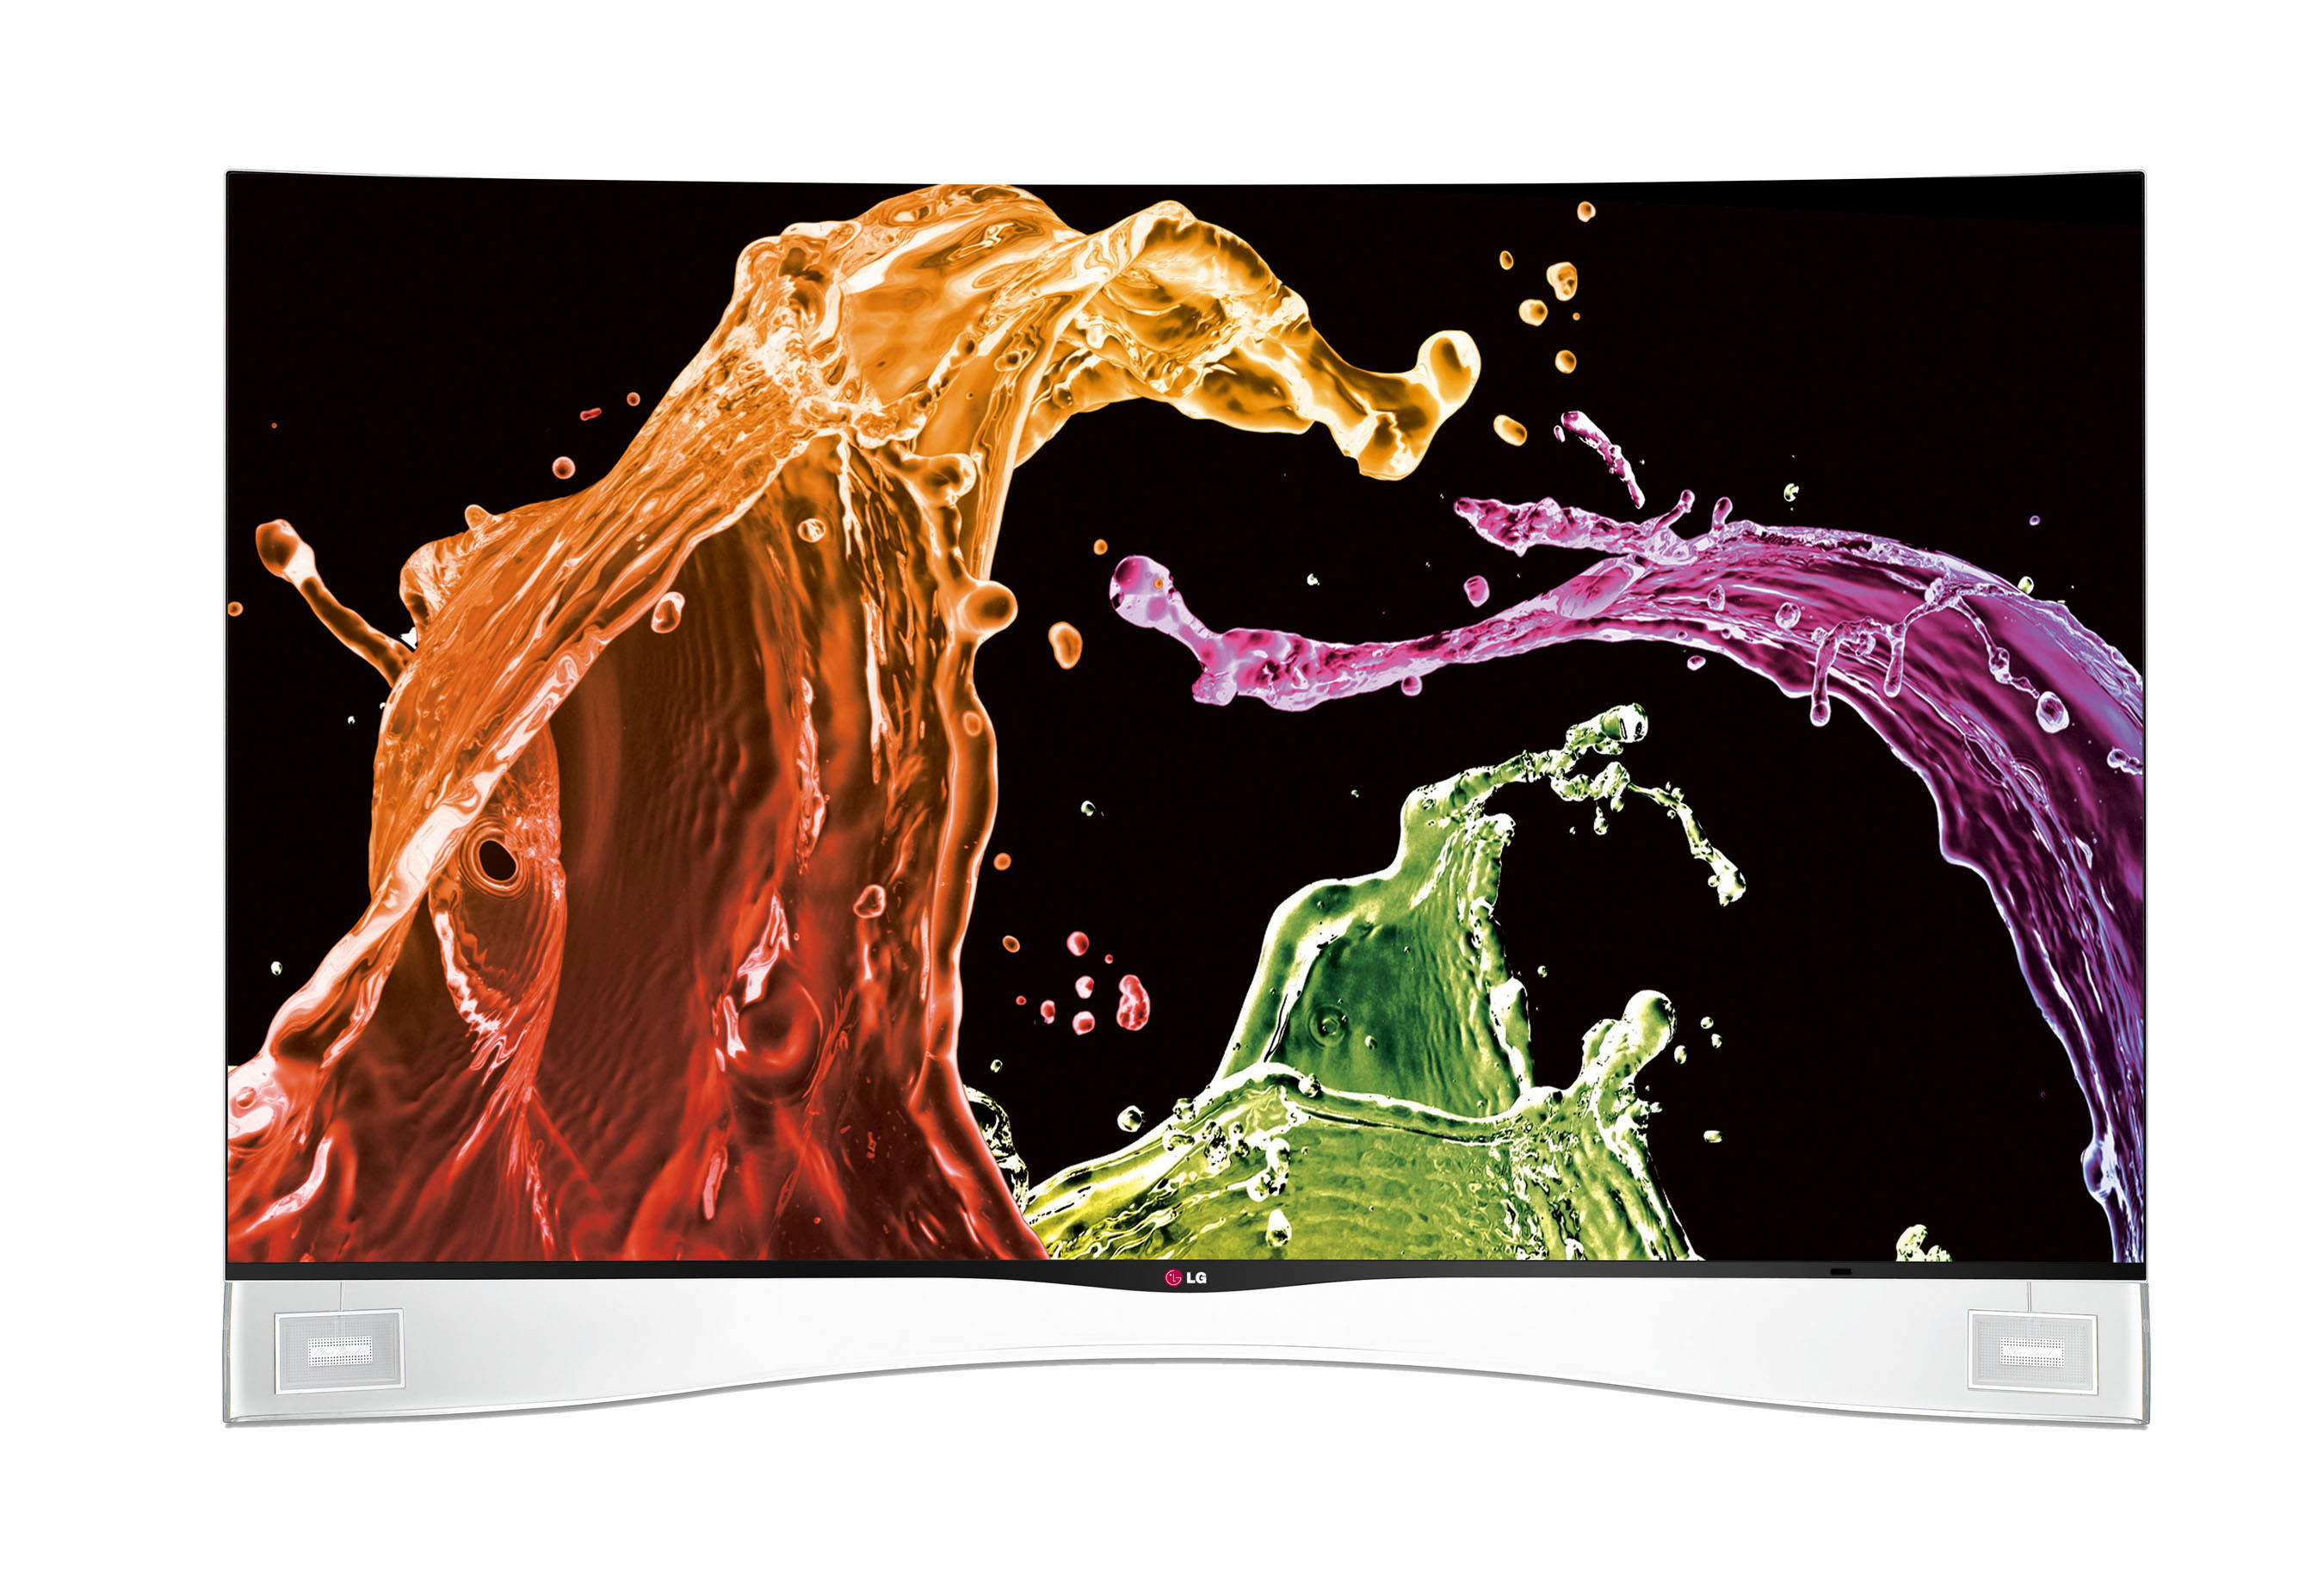 The new LG CURVED OLED HDTV, the first of its kind in the U.S., goes on sale today. The new TV produces astoundingly vivid and realistic images thanks to LG's proprietary WRGB technology. The unique WRGB four-color pixel system features a white sub-pixel that works in conjunction with conventional red, green and blue pixels to create the perfect color output. LG's exclusive Color Refiner delivers even greater tonal enhancement, resulting in images that are more vibrant and natural than anything seen before.  (PRNewsFoto/LG Electronics USA, Inc.)